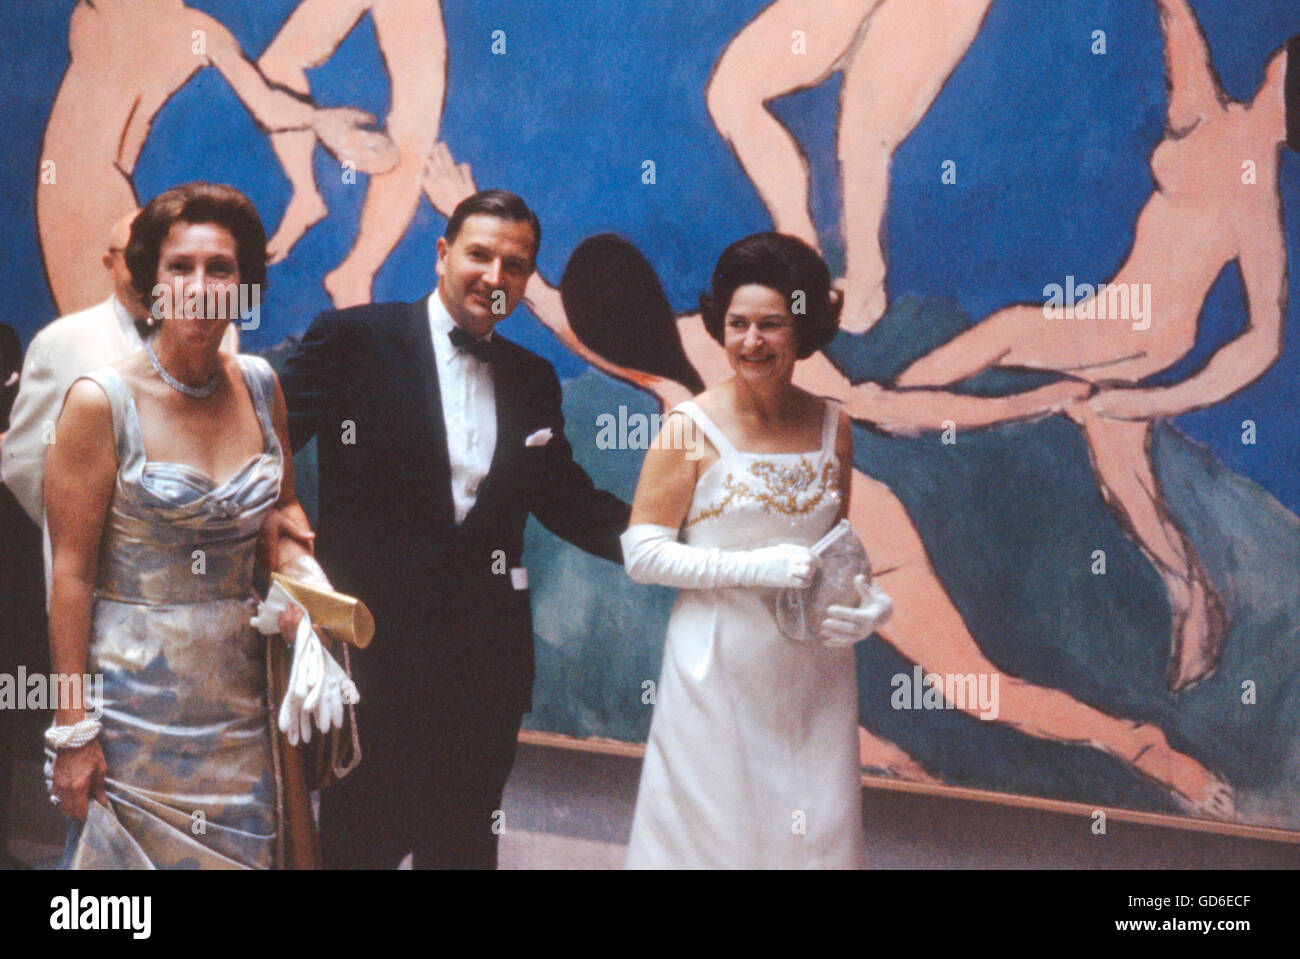 Lady Bird Johnson, David Rockefeller, and Peggy Rockefeller, - Stock Image